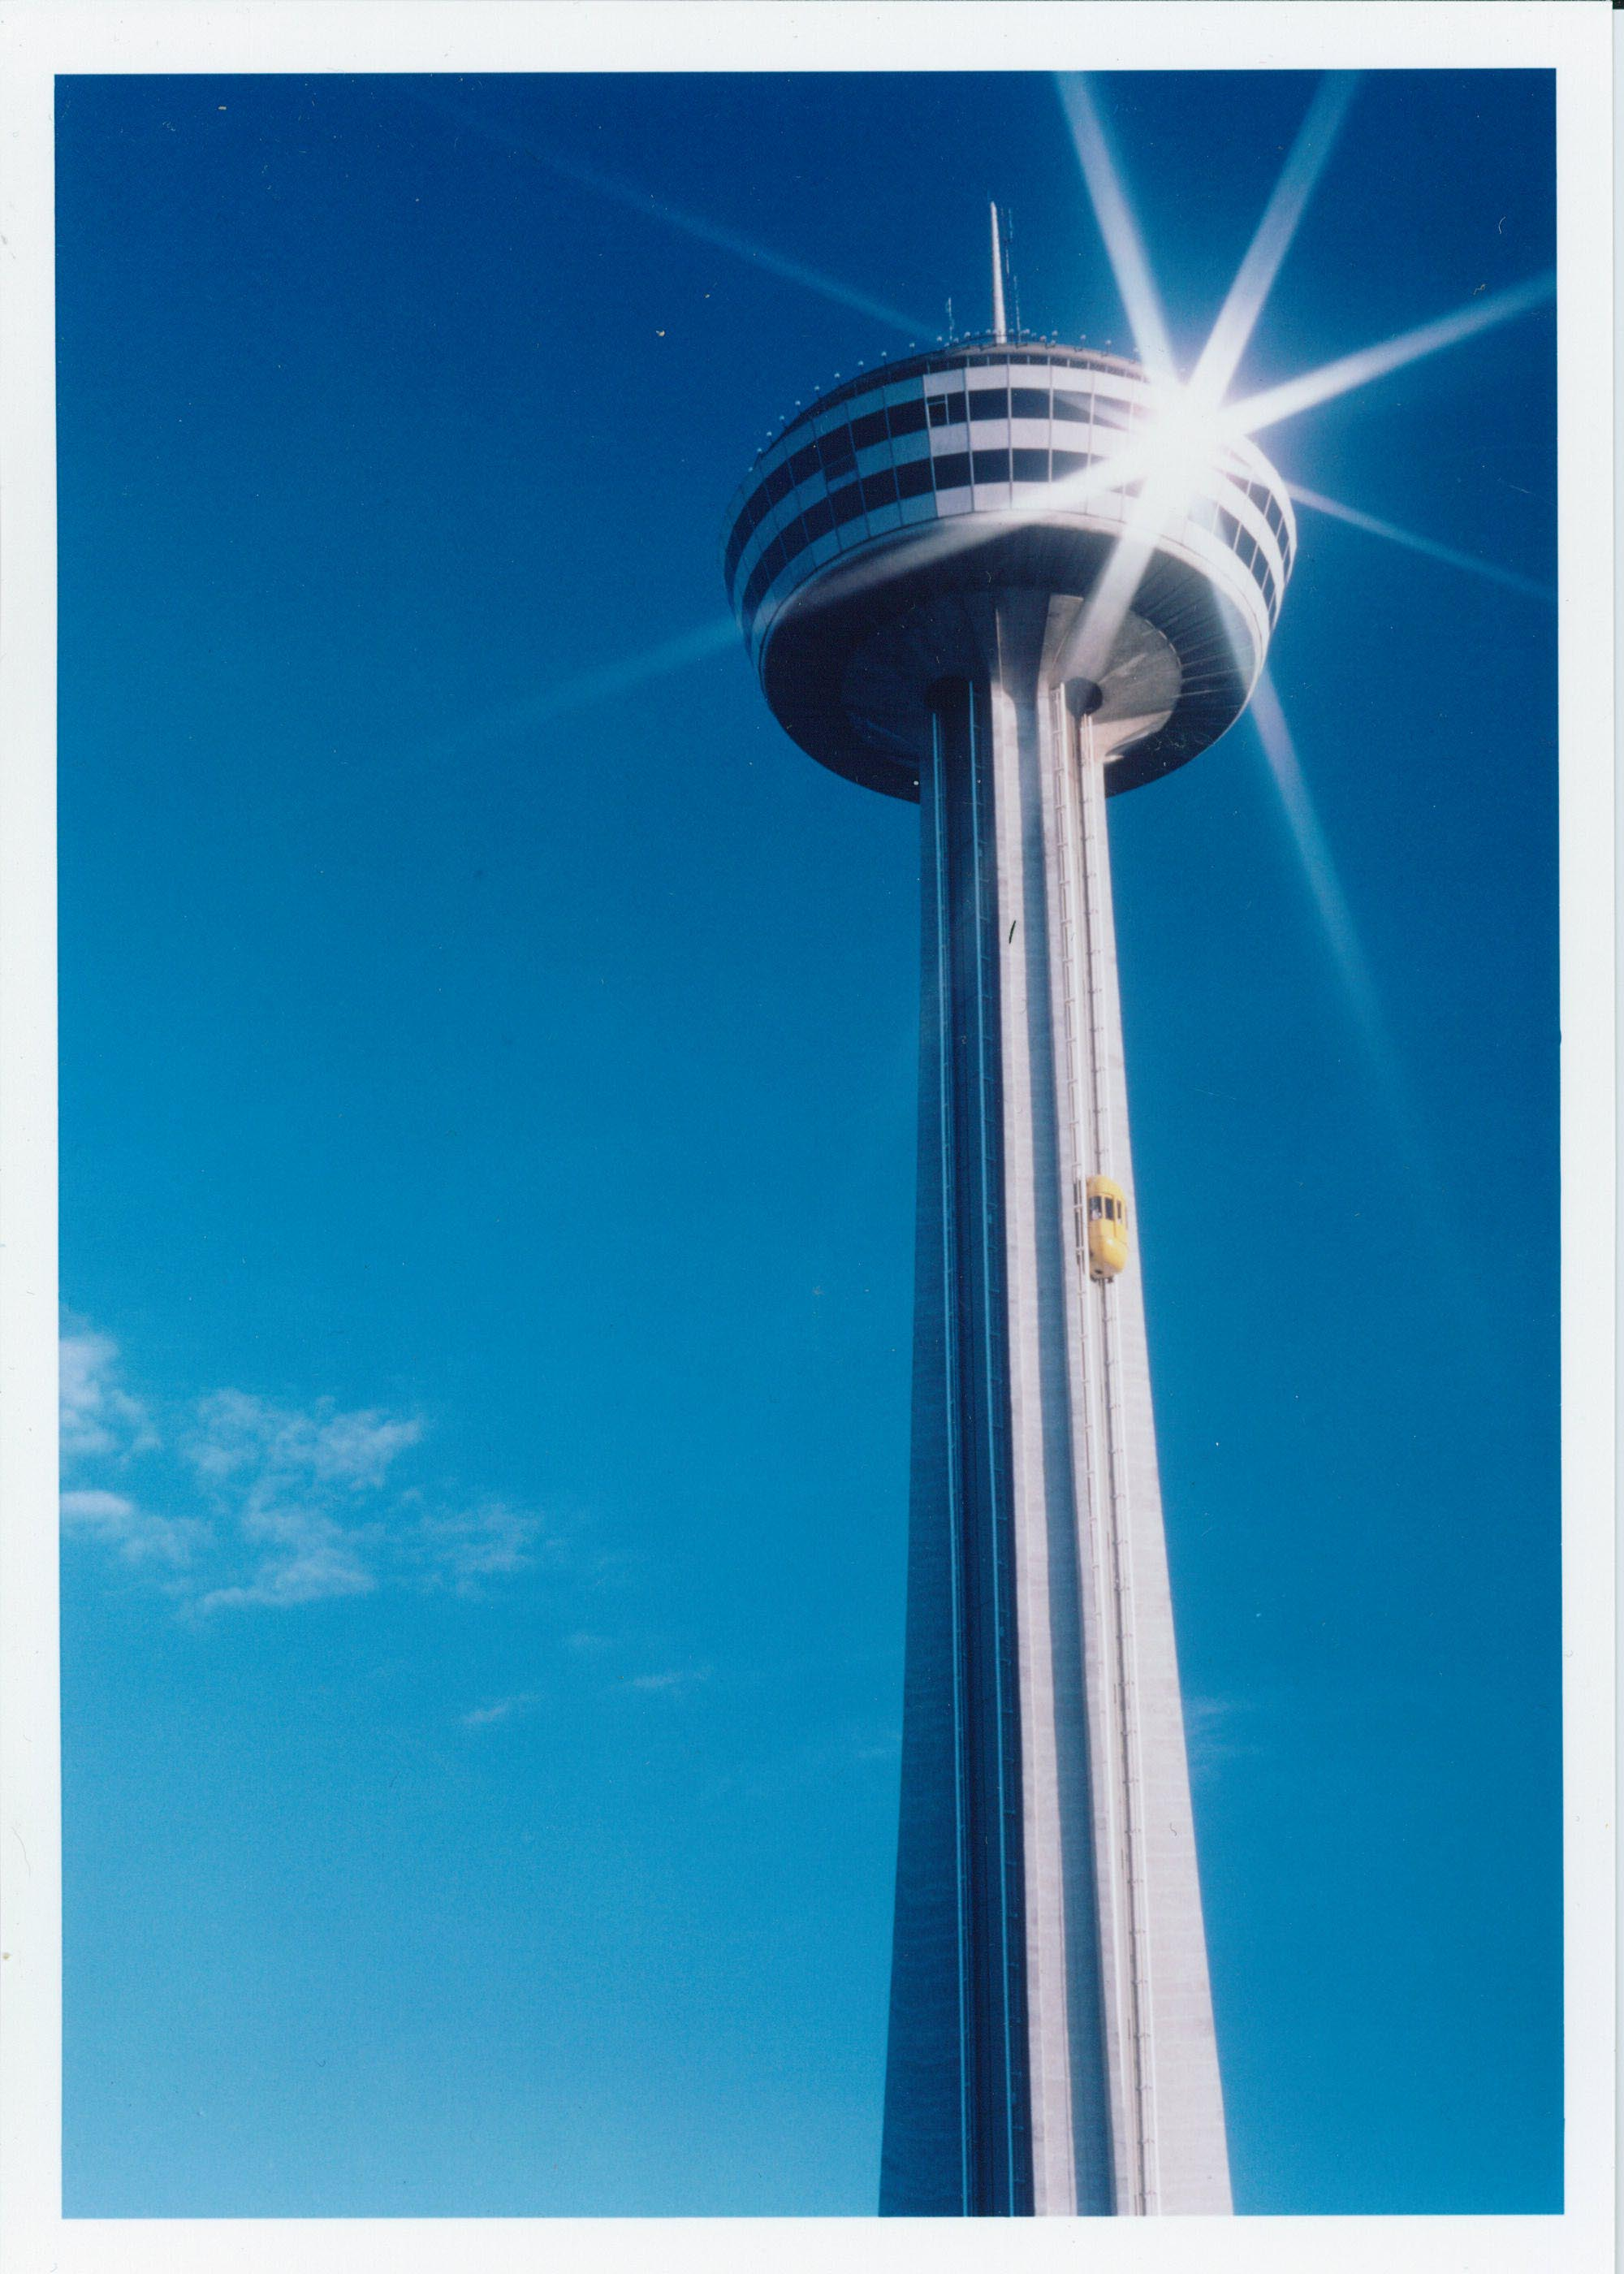 """The Tower Was Officially Named the """"Skylon Tower"""""""